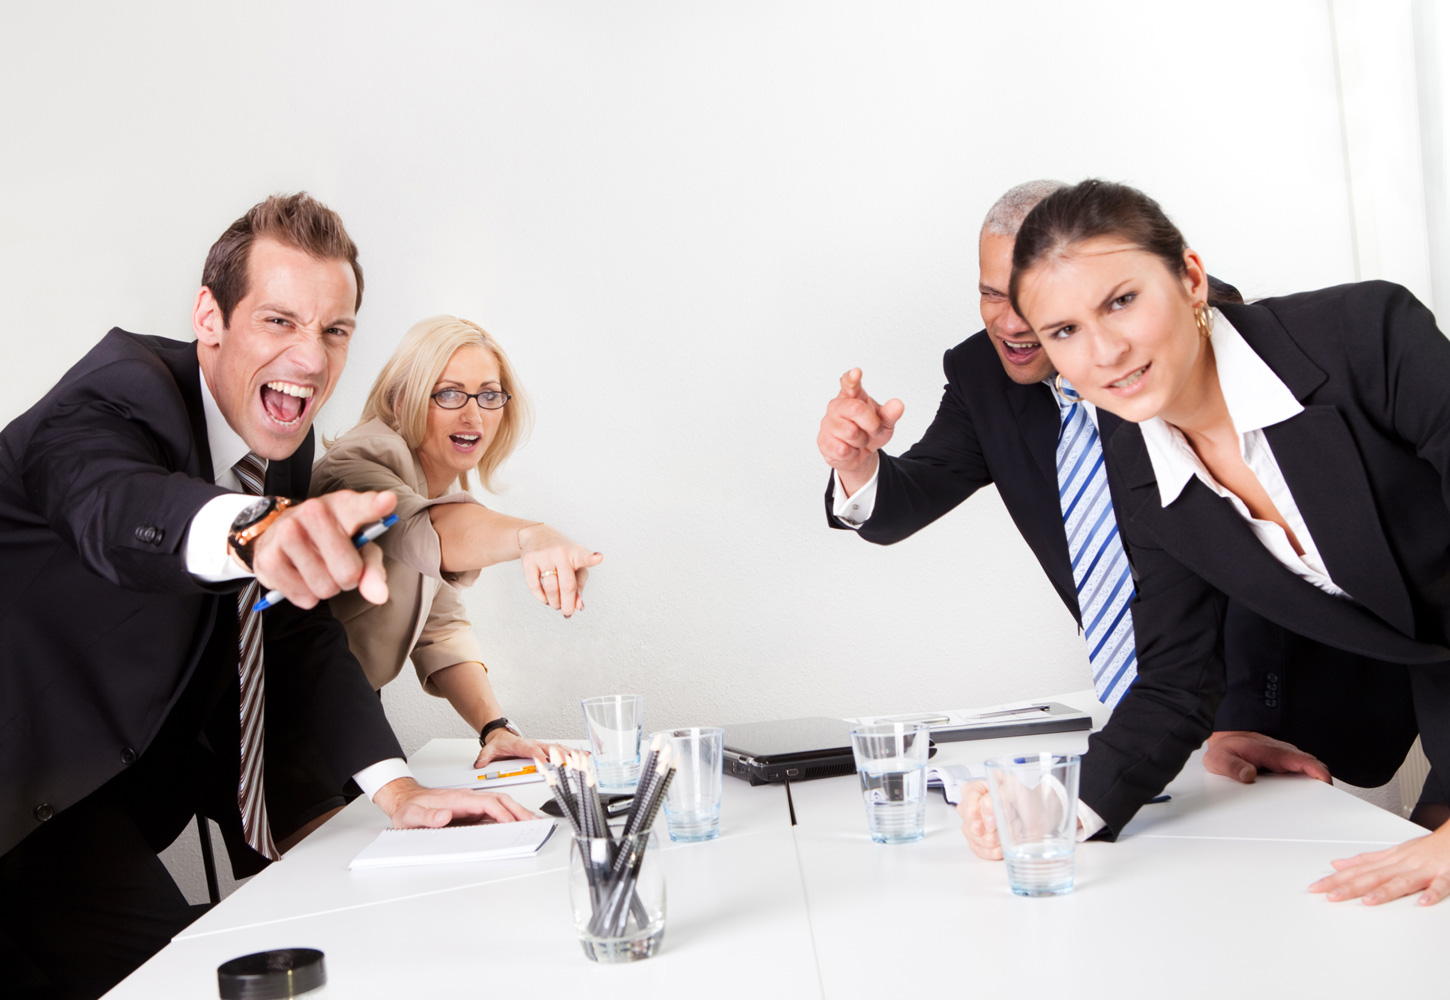 office manipulation and situational judgement tests